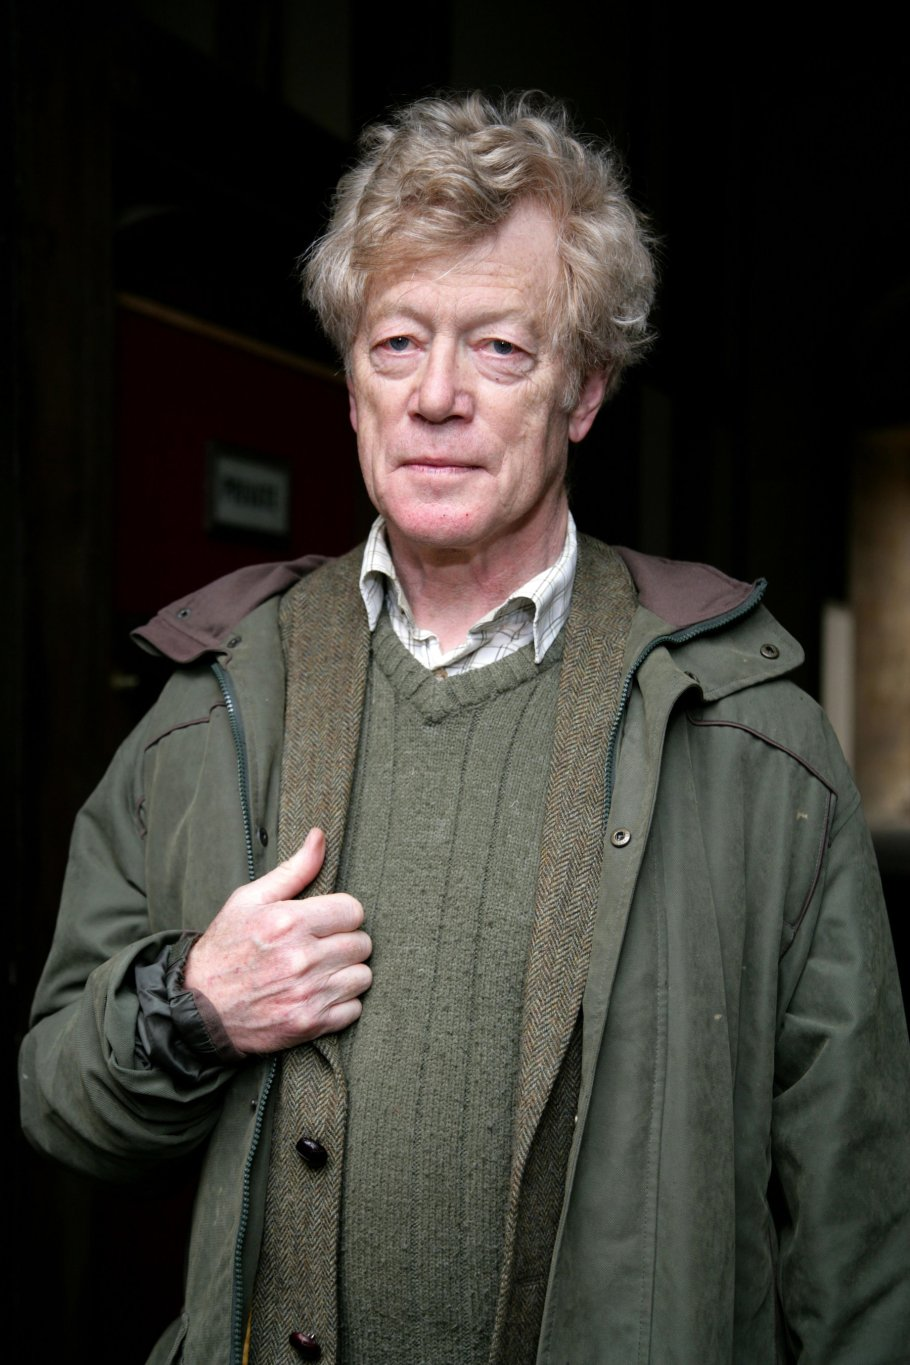 Roger Scruton, a Provocative Public Intellectual, Dies at 75 - The ...